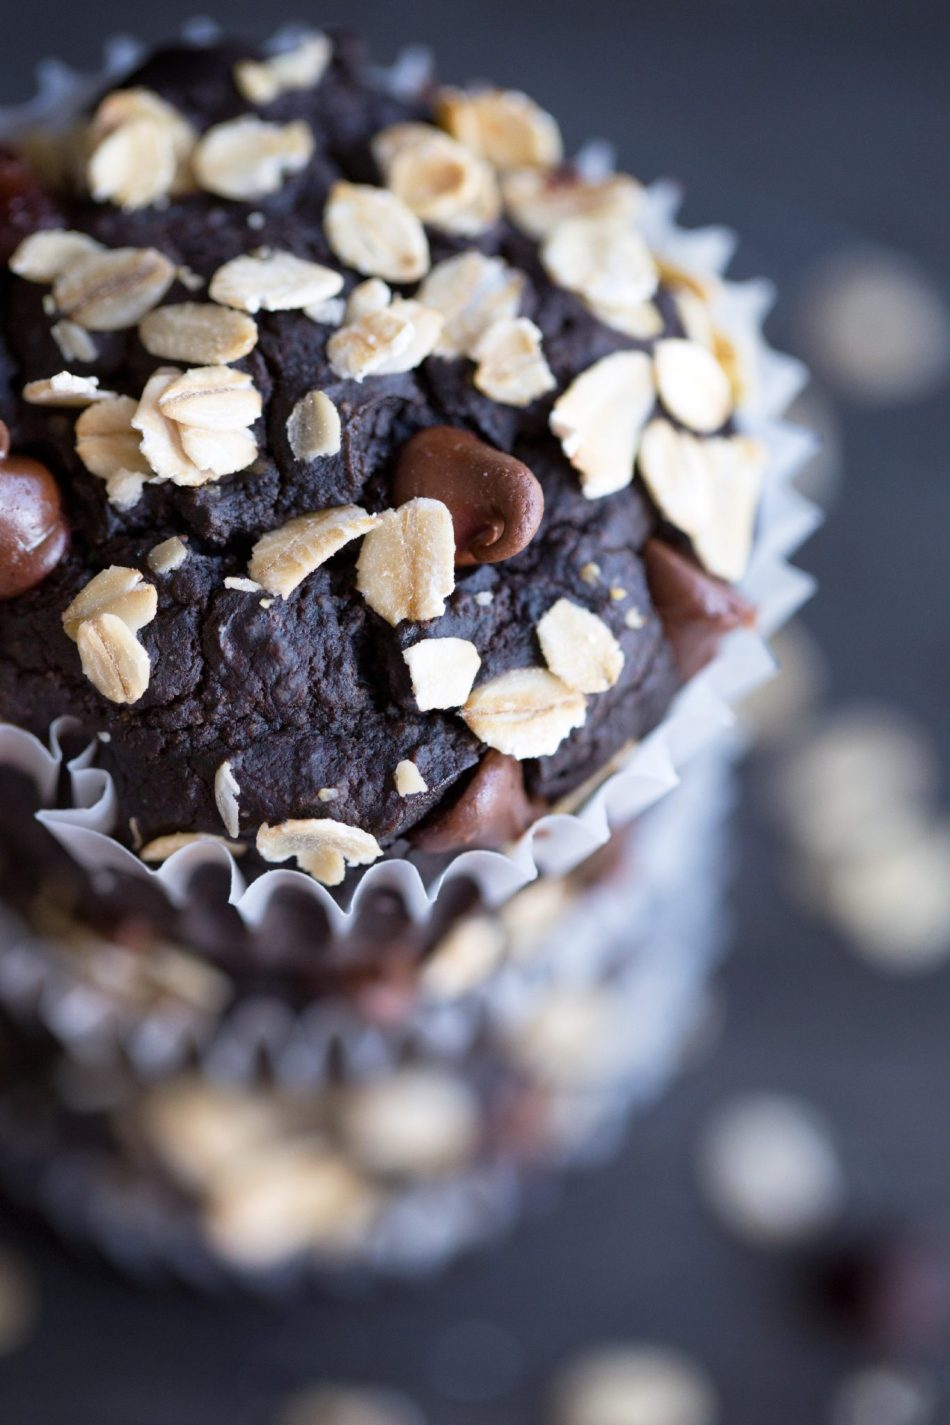 Double Chocolate Zucchini Muffins | Free of gluten, dairy, eggs, and refined sugar.